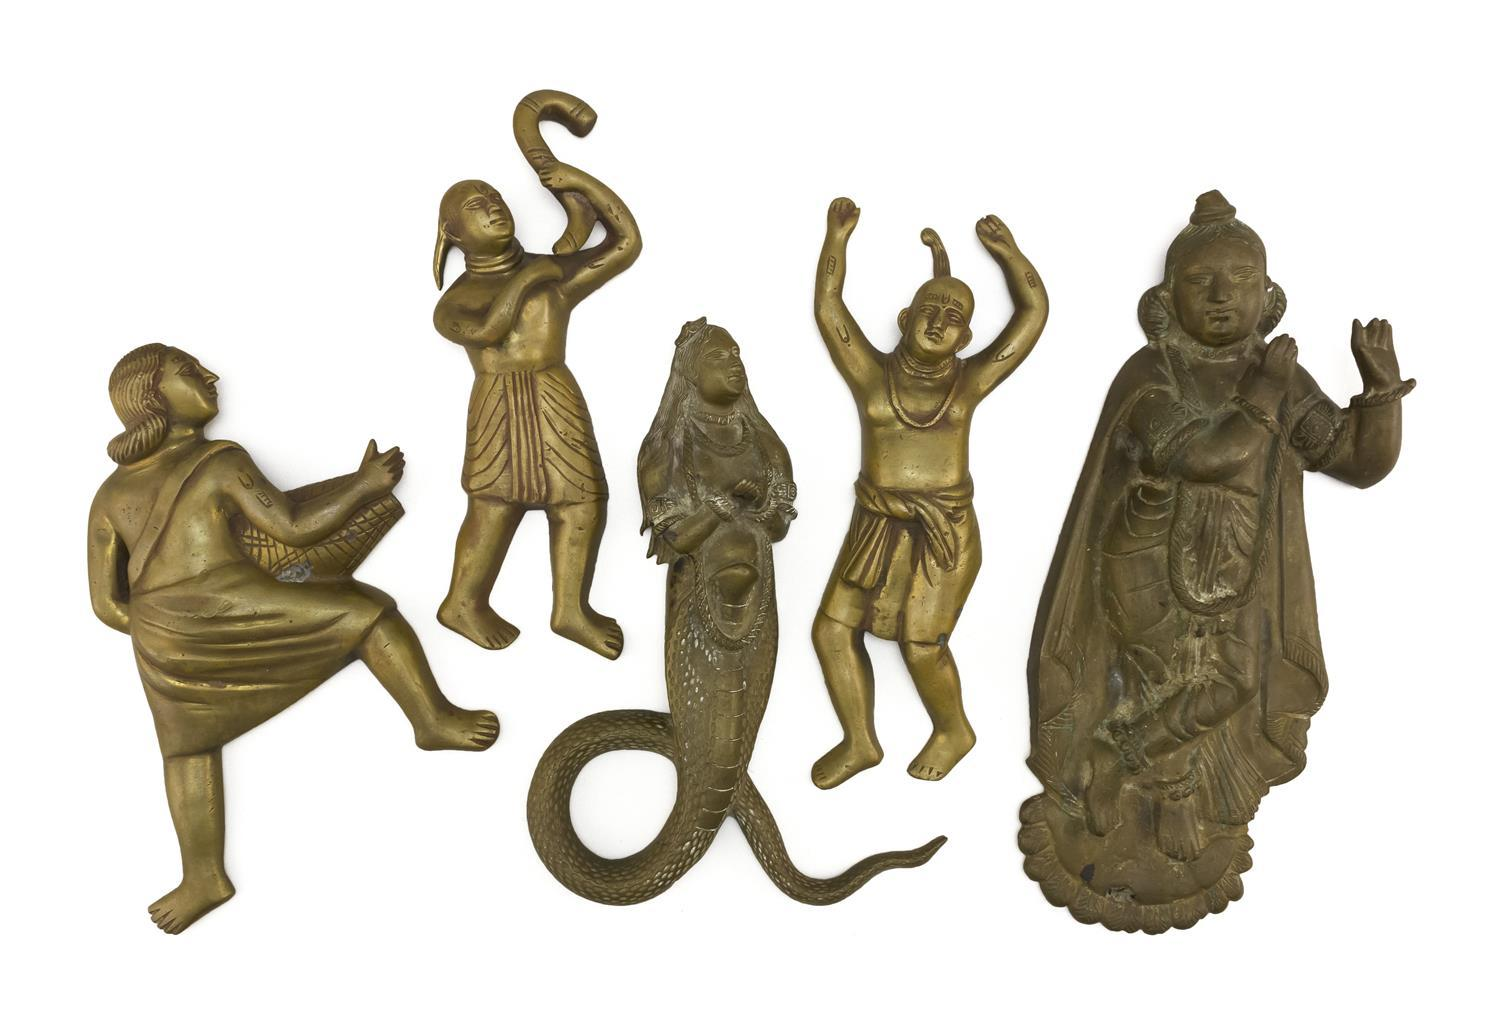 """FIVE INDIAN BRASS FIGURAL PLAQUES A man with a basket, height 8.5"""", a mermaid, height 11"""", a man with a trumpet, height 10.25"""", a ma..."""